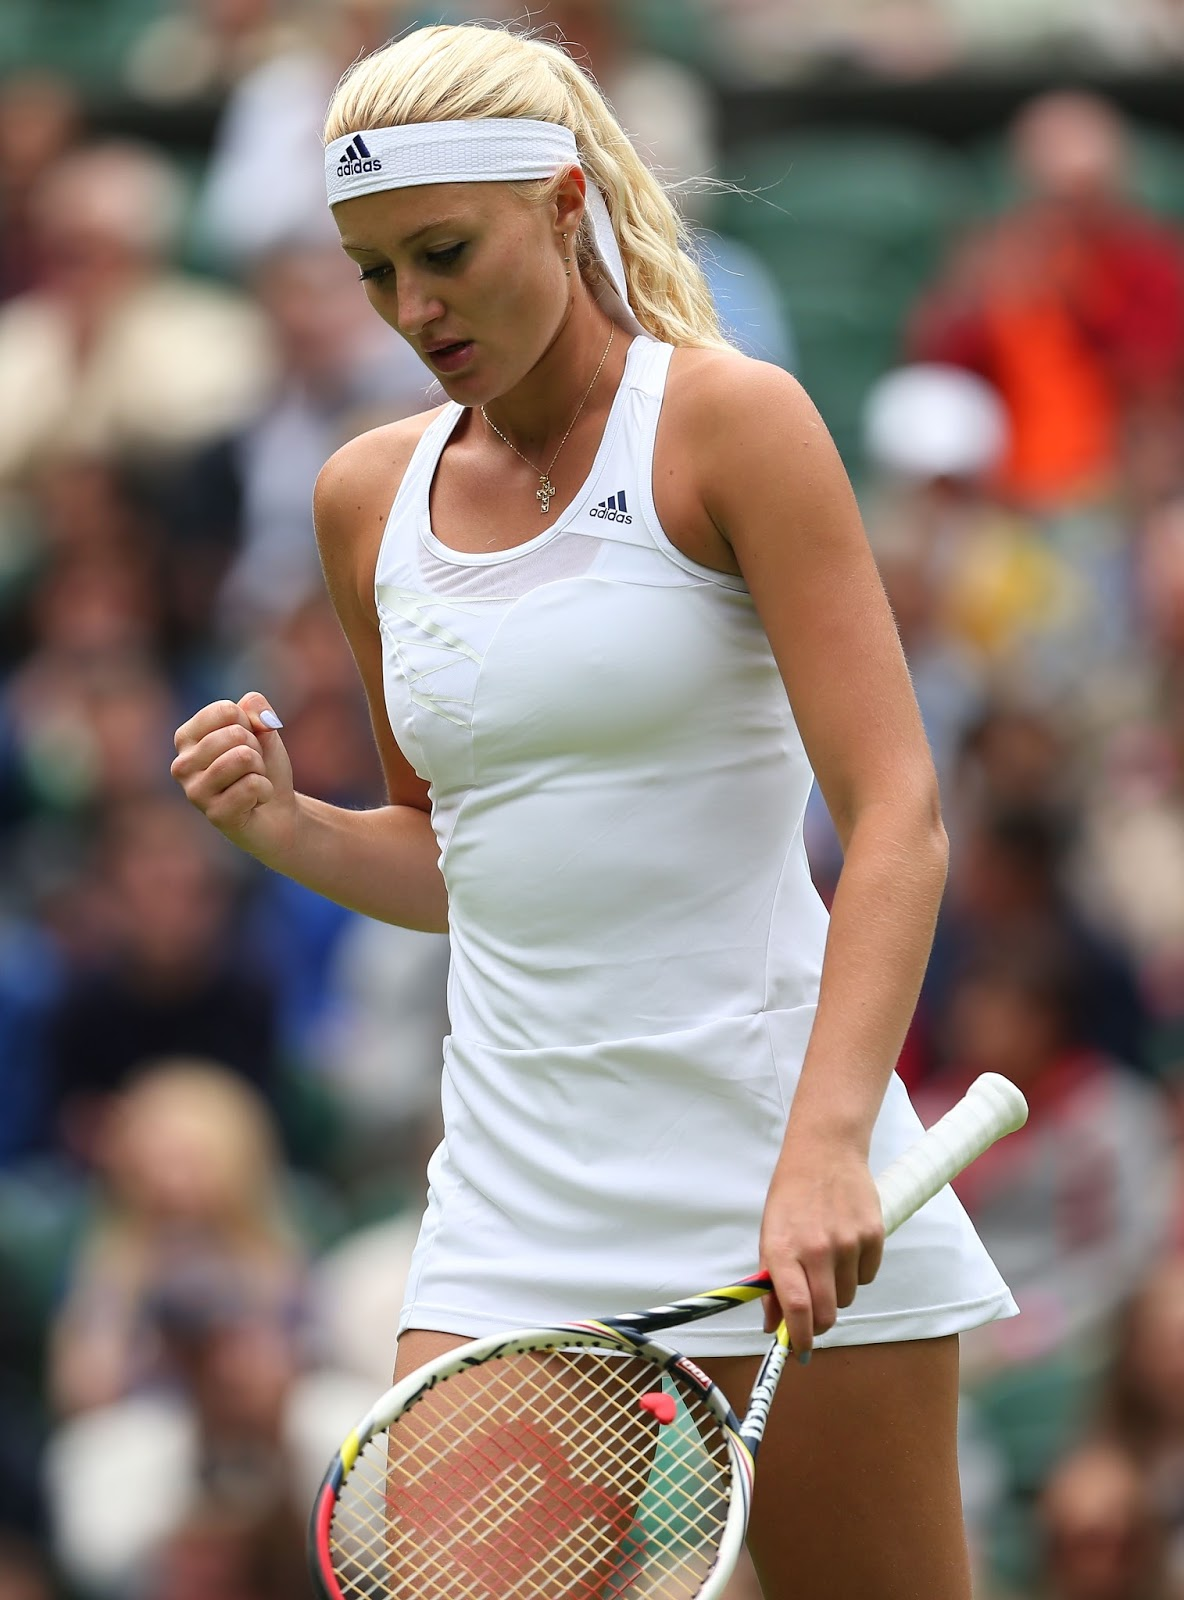 Kristina Mladenovic - Beauty And Hot French Tennis Player -7201